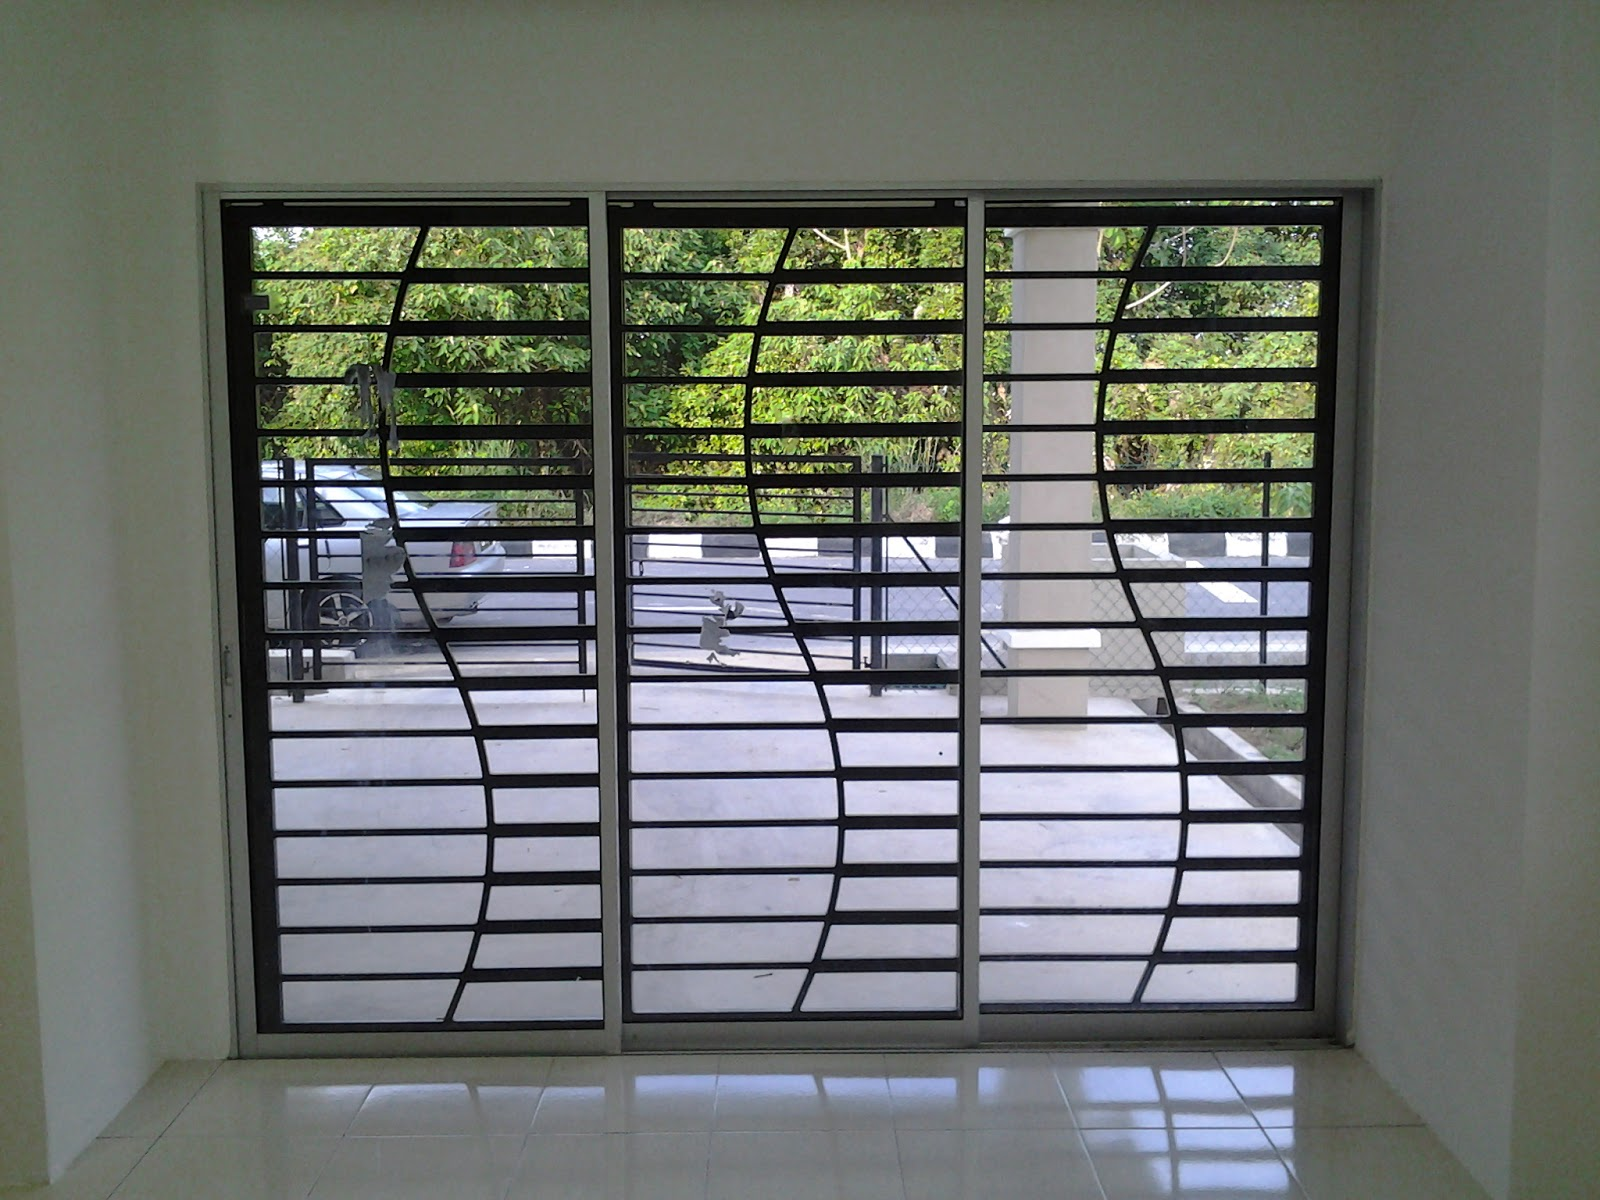 Rumahku syurgaku grill assemble for Window bars design